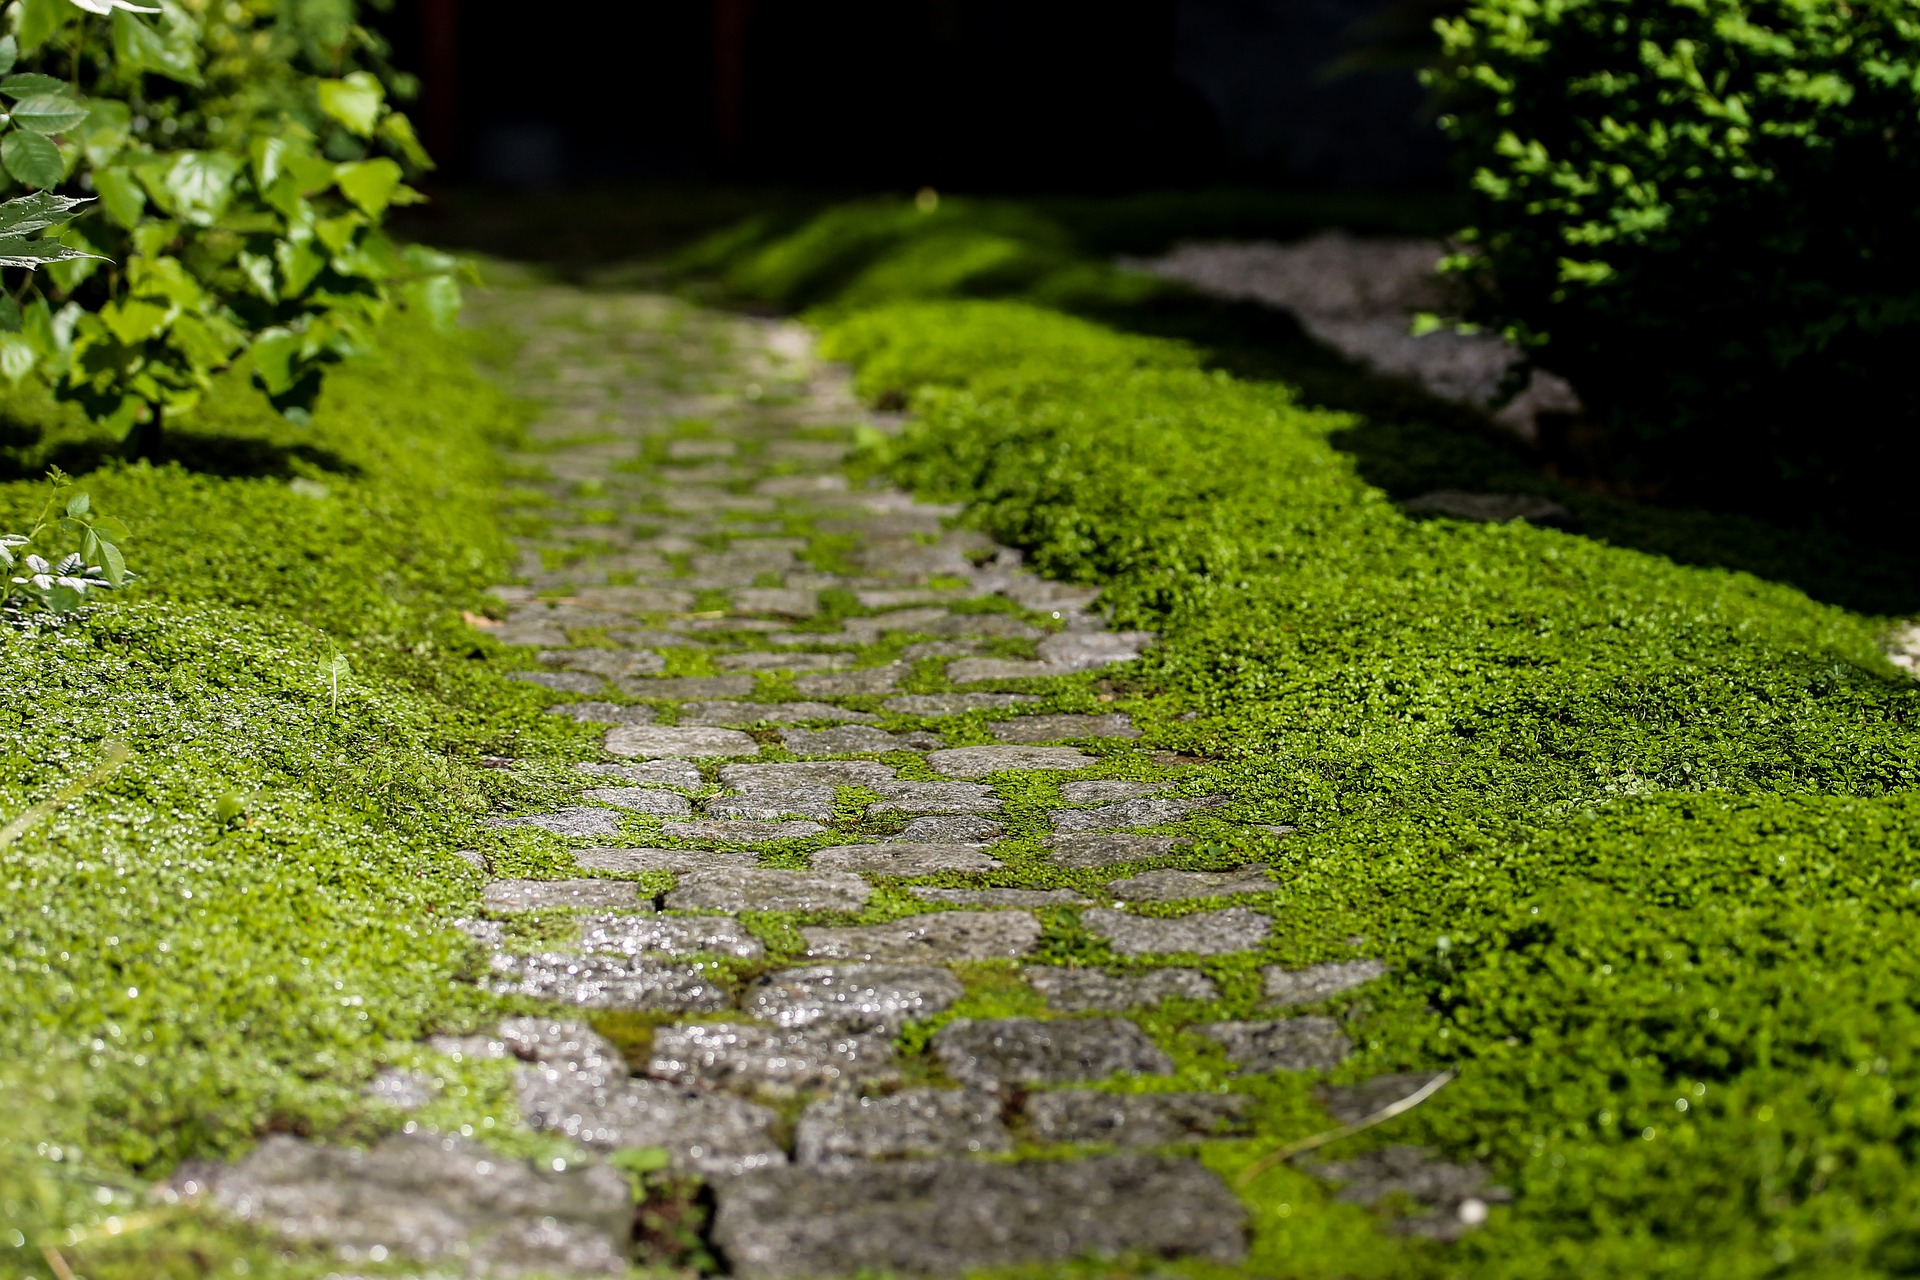 mossy cobbled path